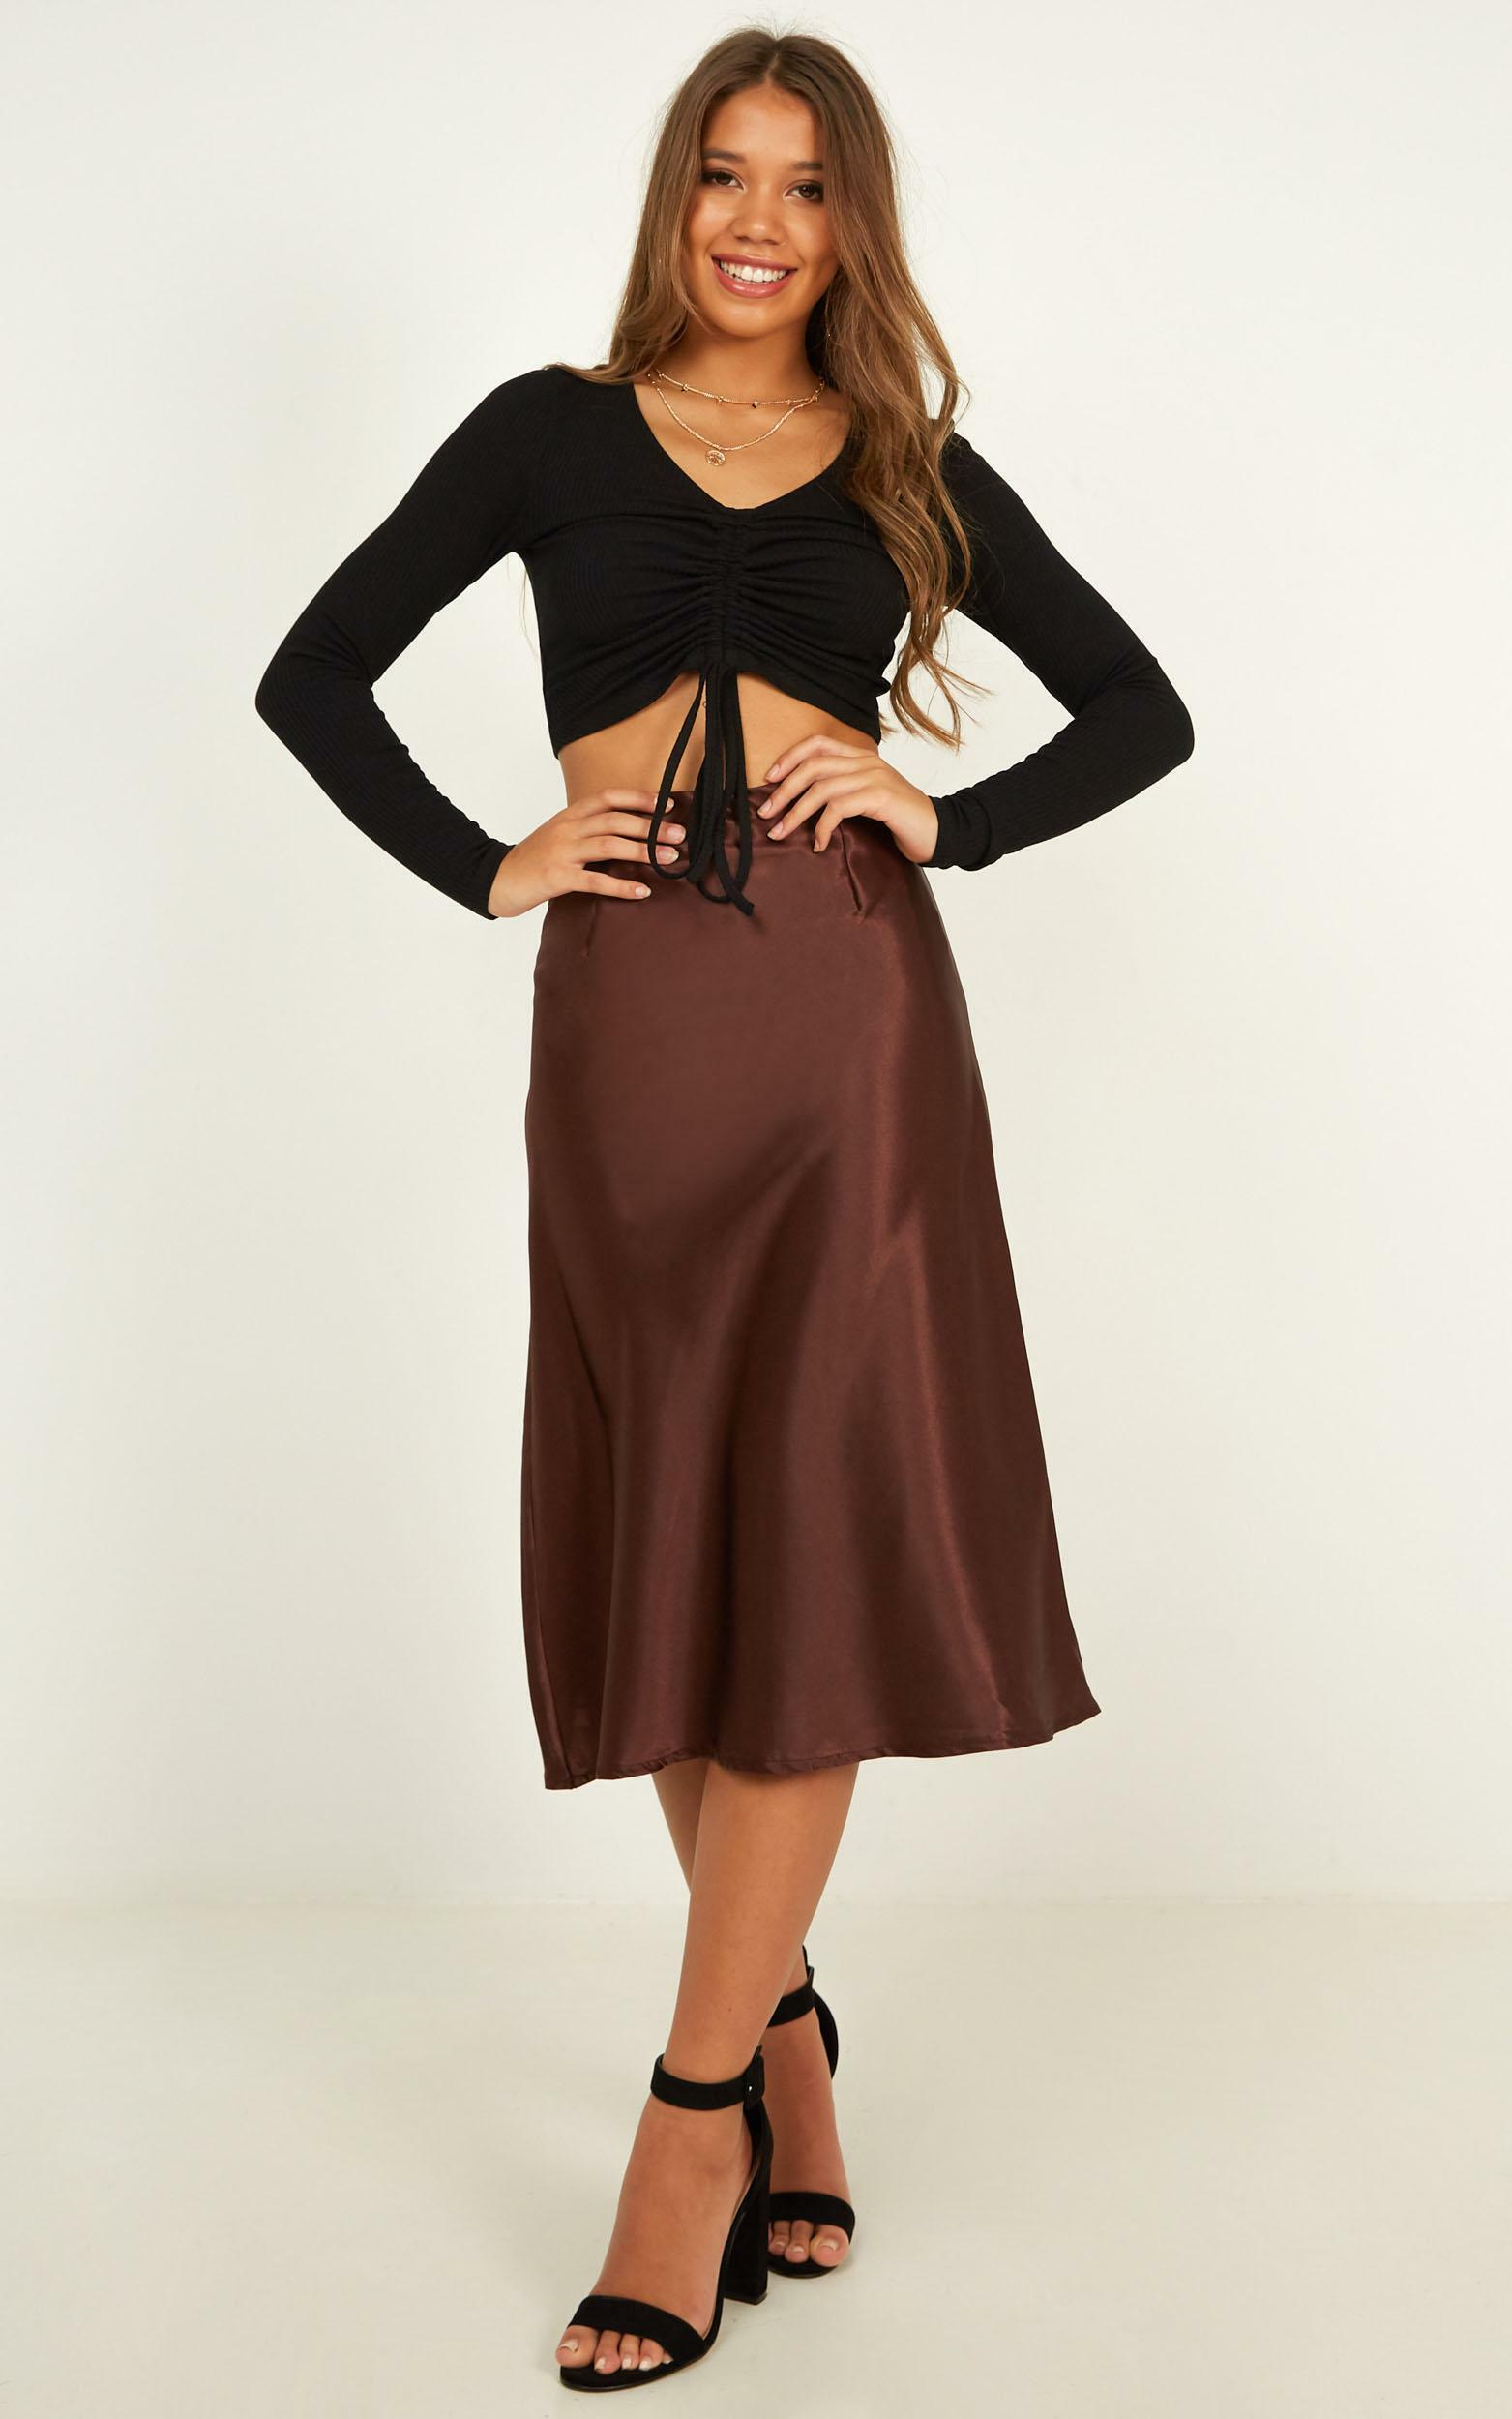 Creating Art Skirt In chocolate satin - 8 (S), BRN1, hi-res image number null